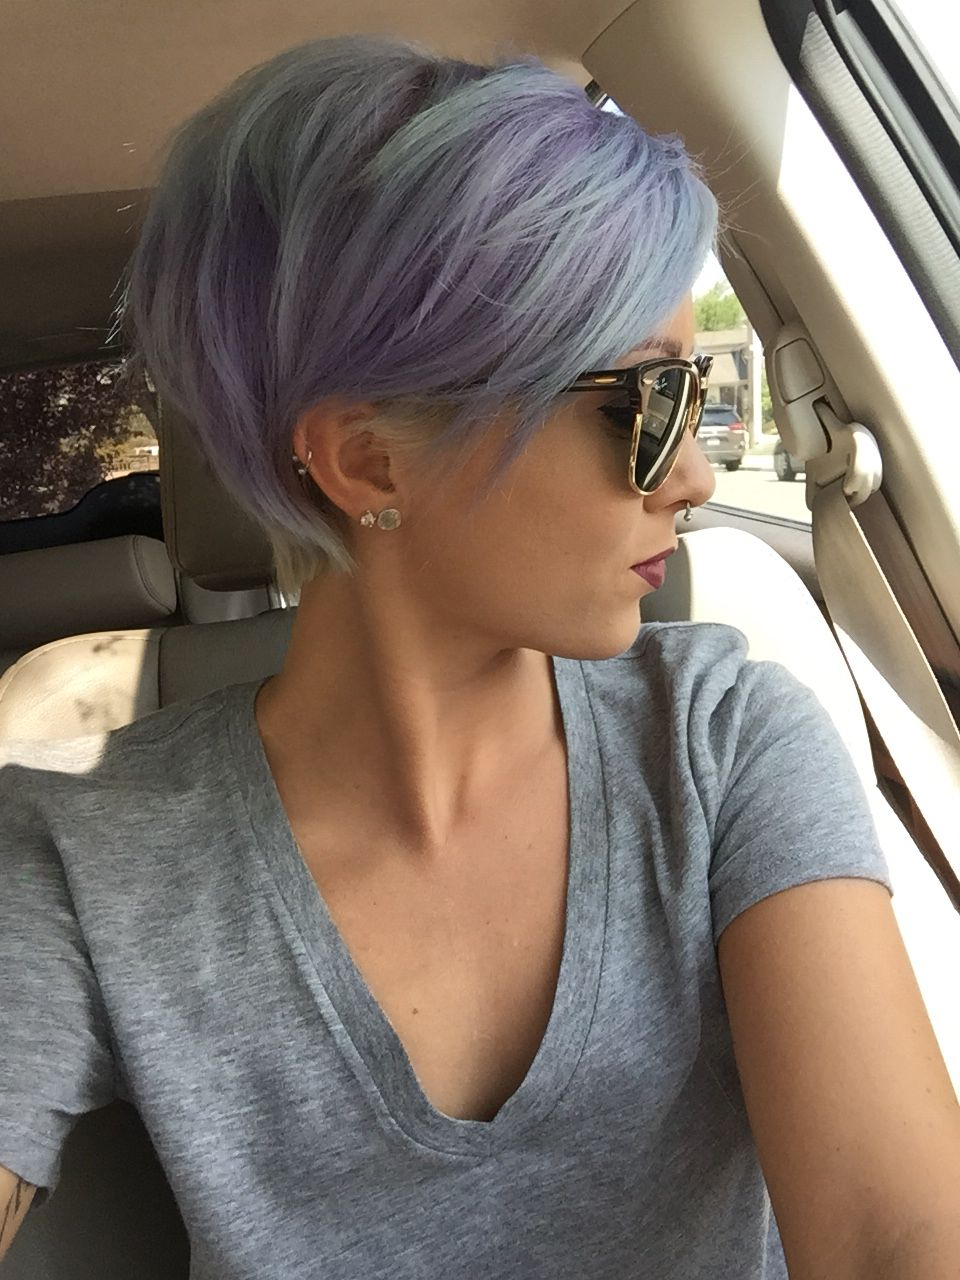 Short pixie with pastel purple and blue hair styles pinterest